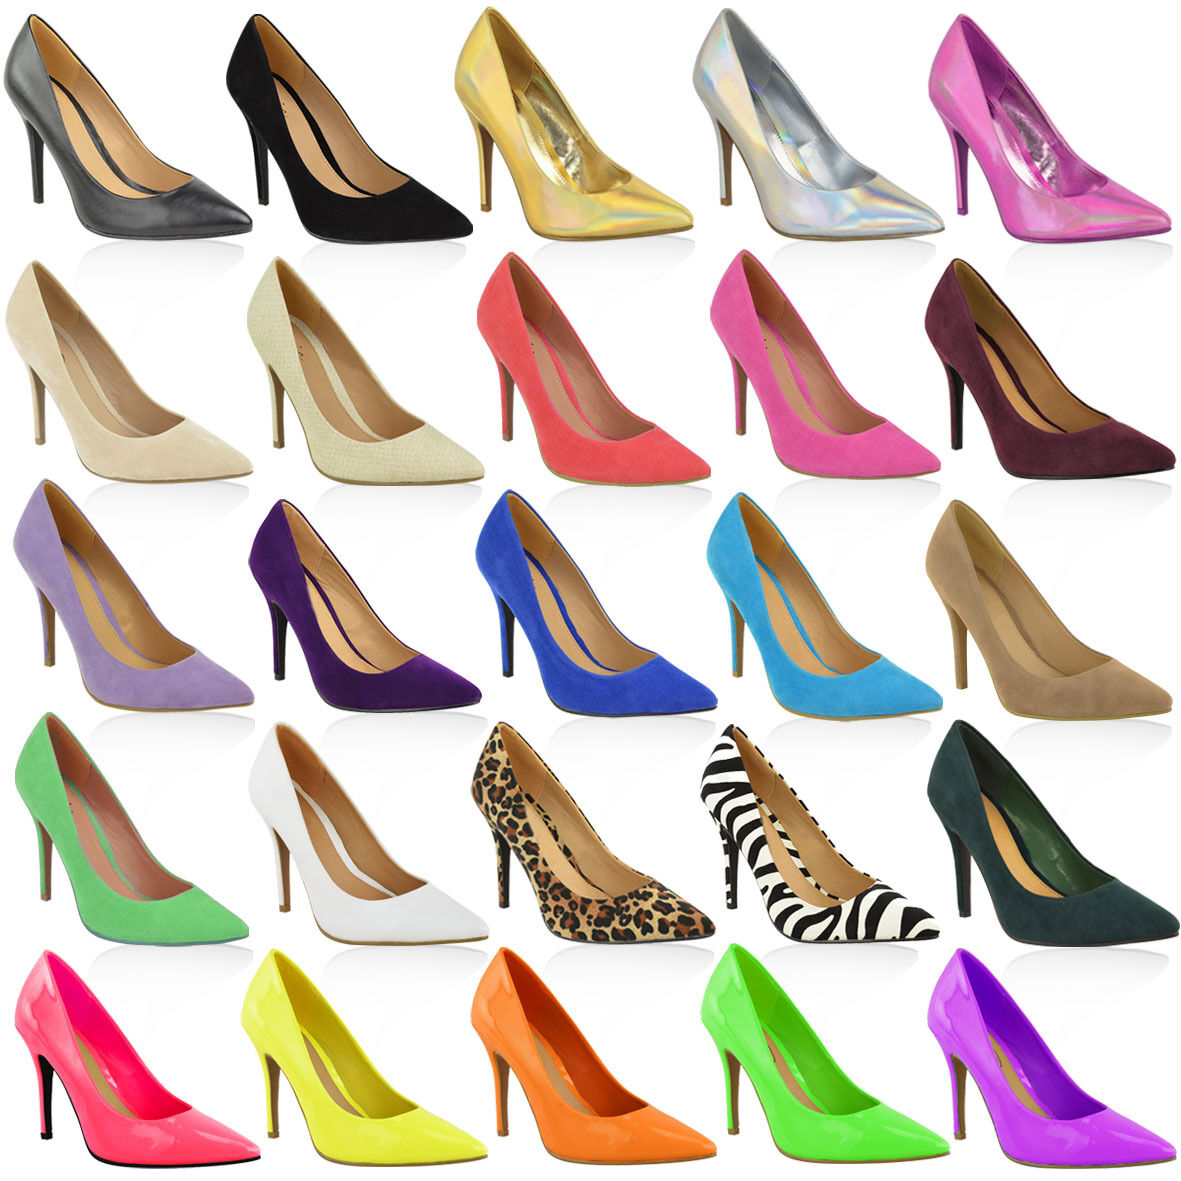 Men's/Women's WOMENS WEDDING LADIES MID HIGH HEEL WEDDING WOMENS BRIDAL PARTY PROM STILETTO COURT SHOES SIZE Every item described is available International choice Various latest designs WG843 7c78b3